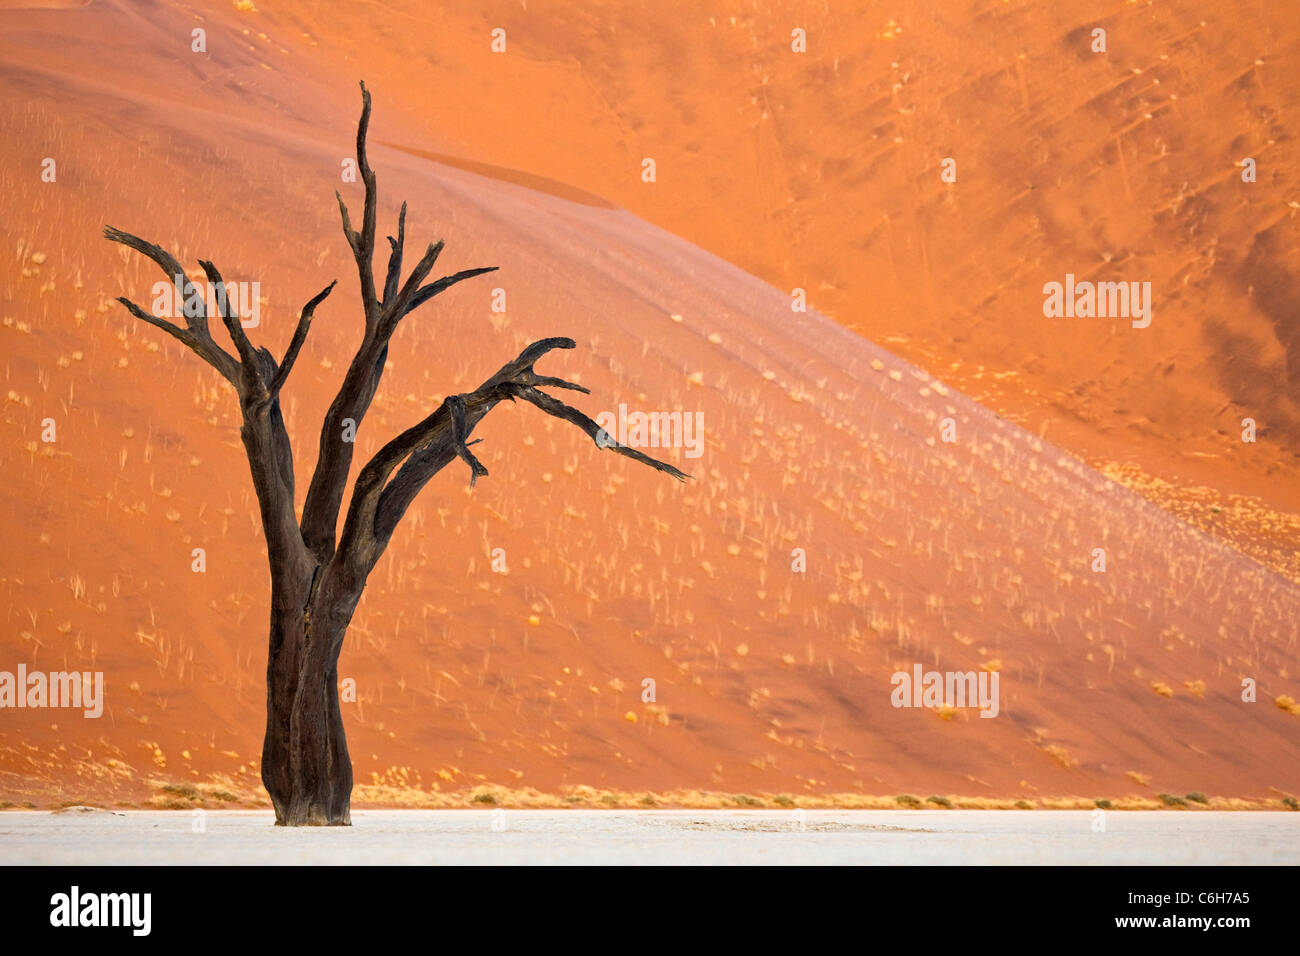 Dead acacia tree against sand dune background Stock Photo